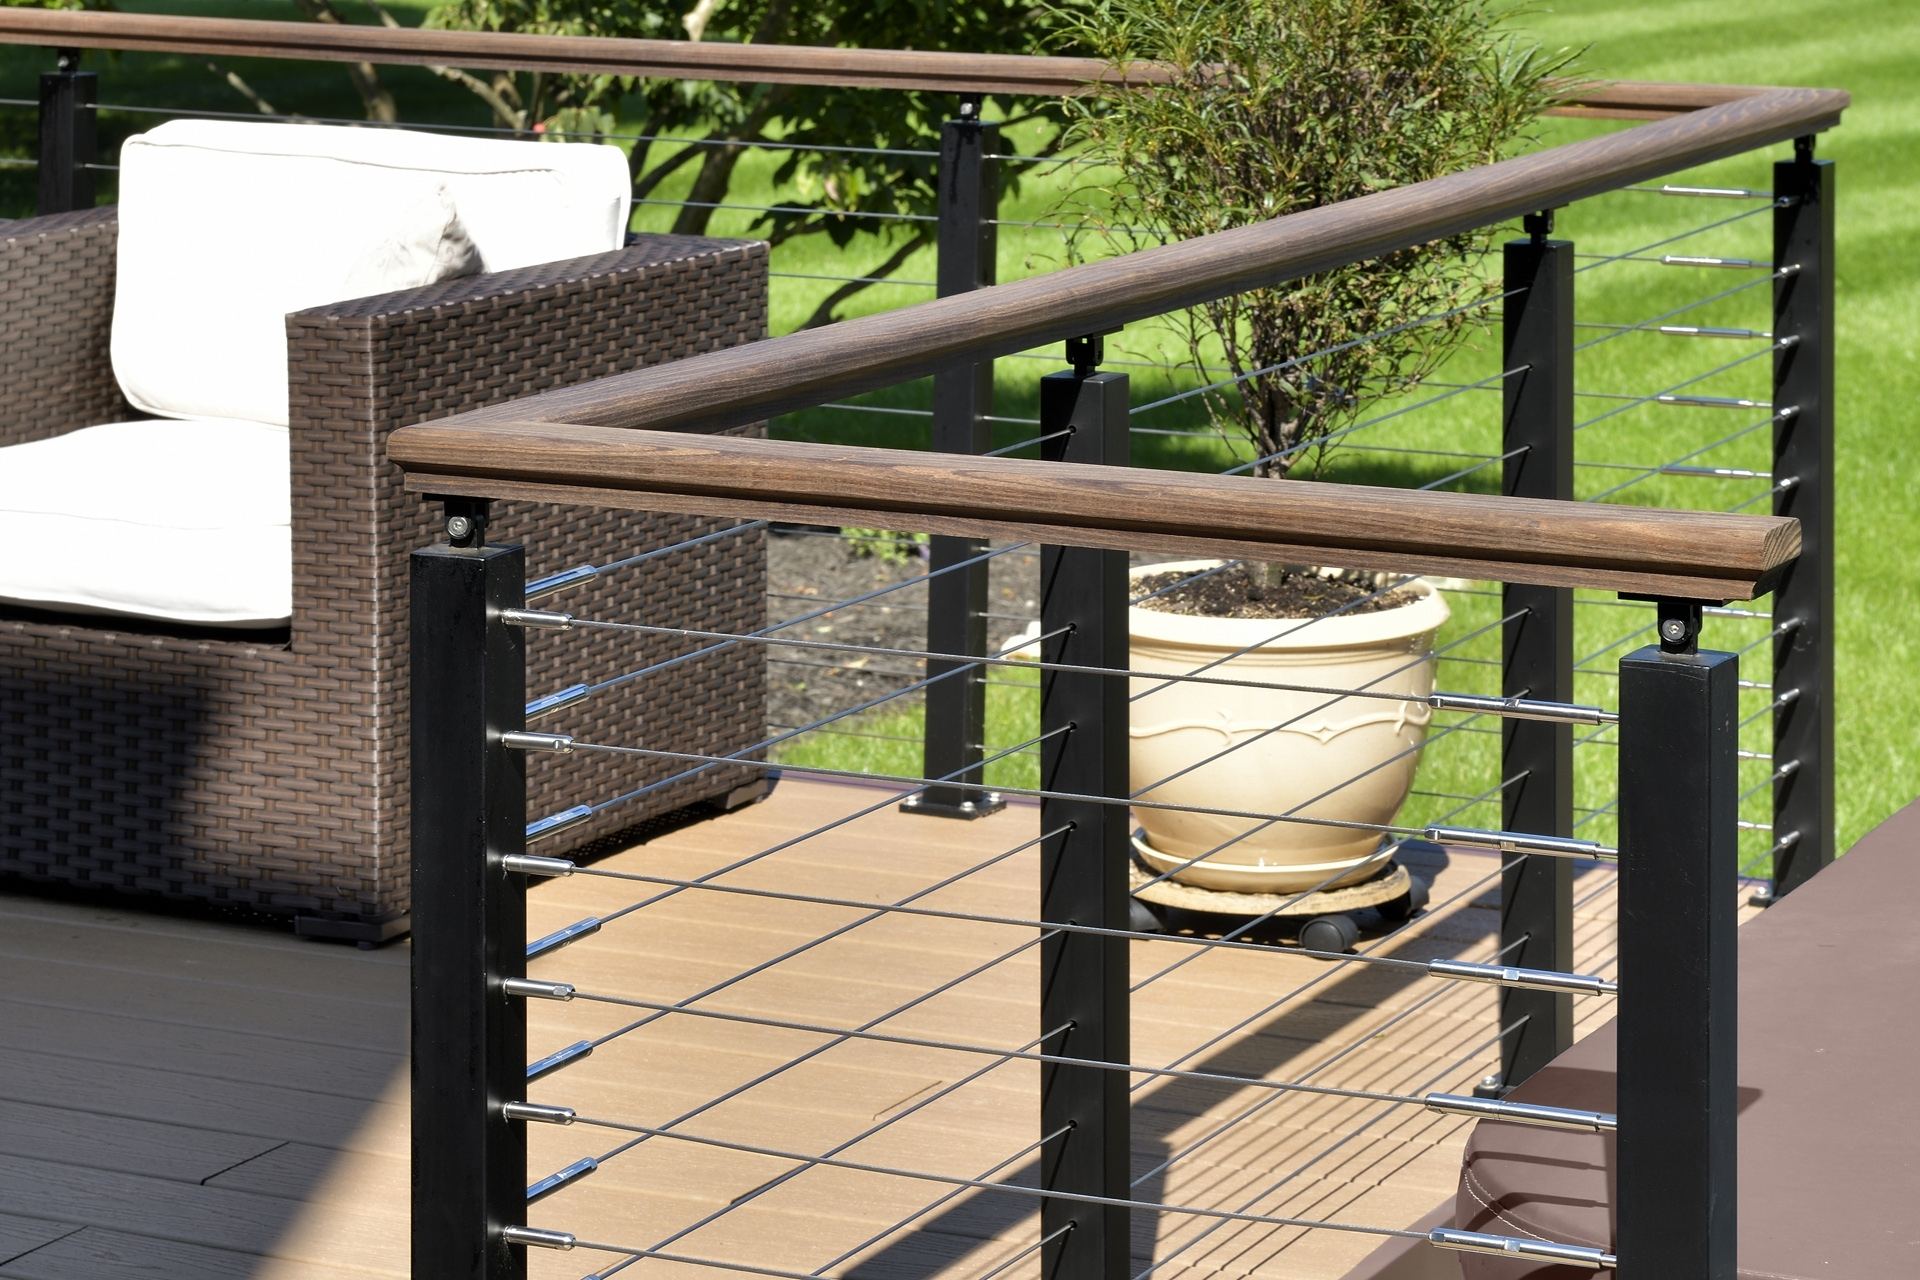 Stair Systems Stairs Stair Parts Newels Balusters And   Custom Handrails Near Me   Staircase   Ornamental Iron   Balusters   Glass   Deck Railing